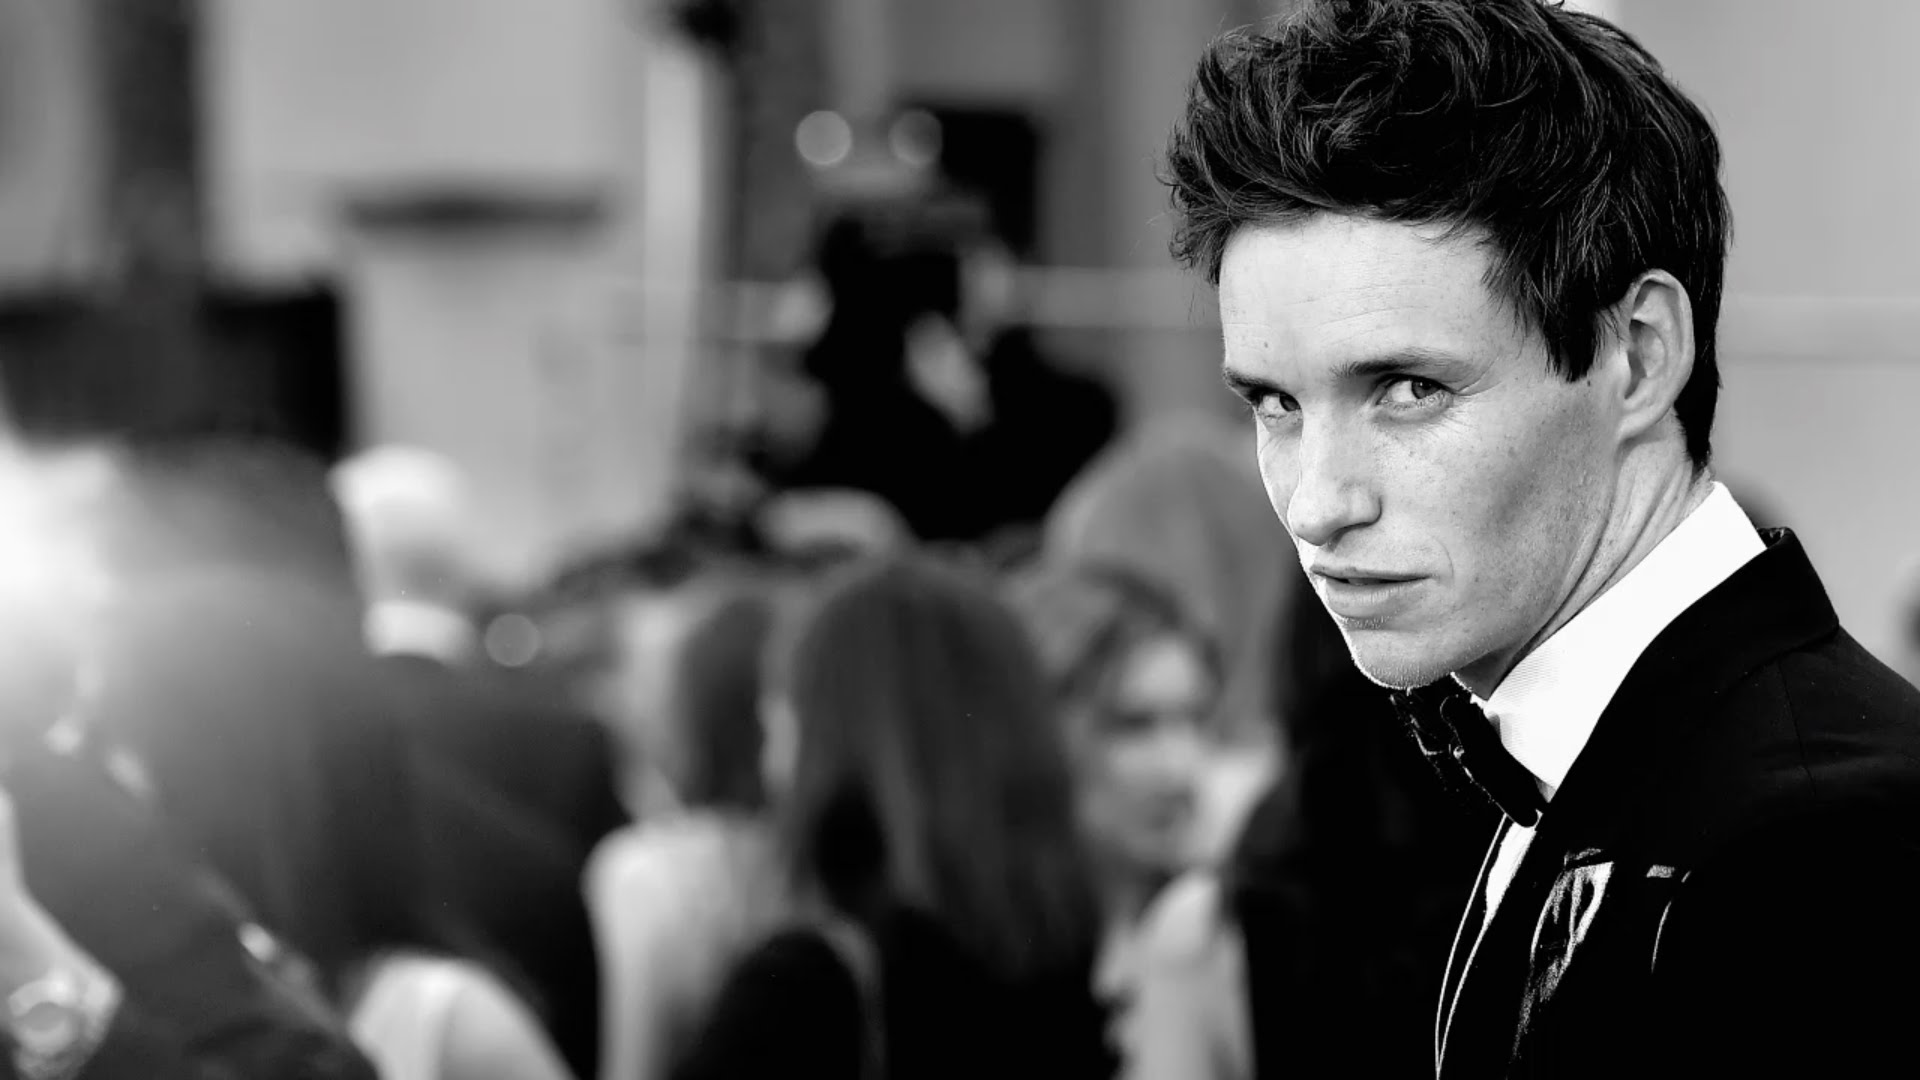 Eddie Redmayne Wallpapers High Resolution and Quality Download